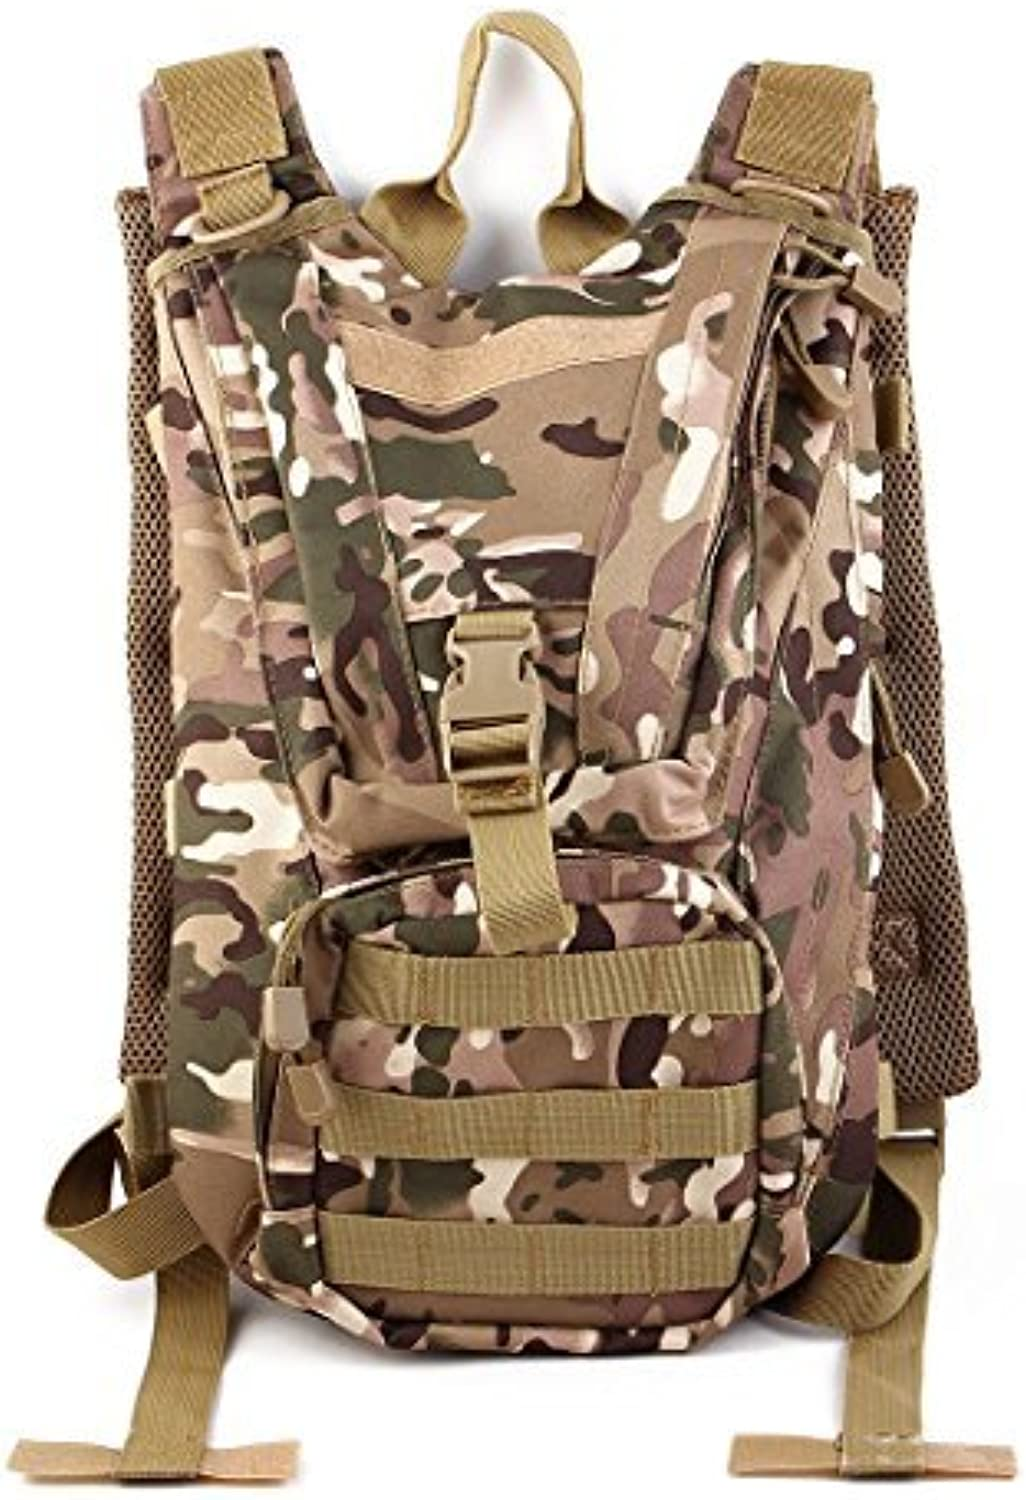 DealMux Outdoor Hiking Camping Climbing Biking Cycling Hydration Backpack Pack CP Camouflage color w 2.5L Water Bladder Bag